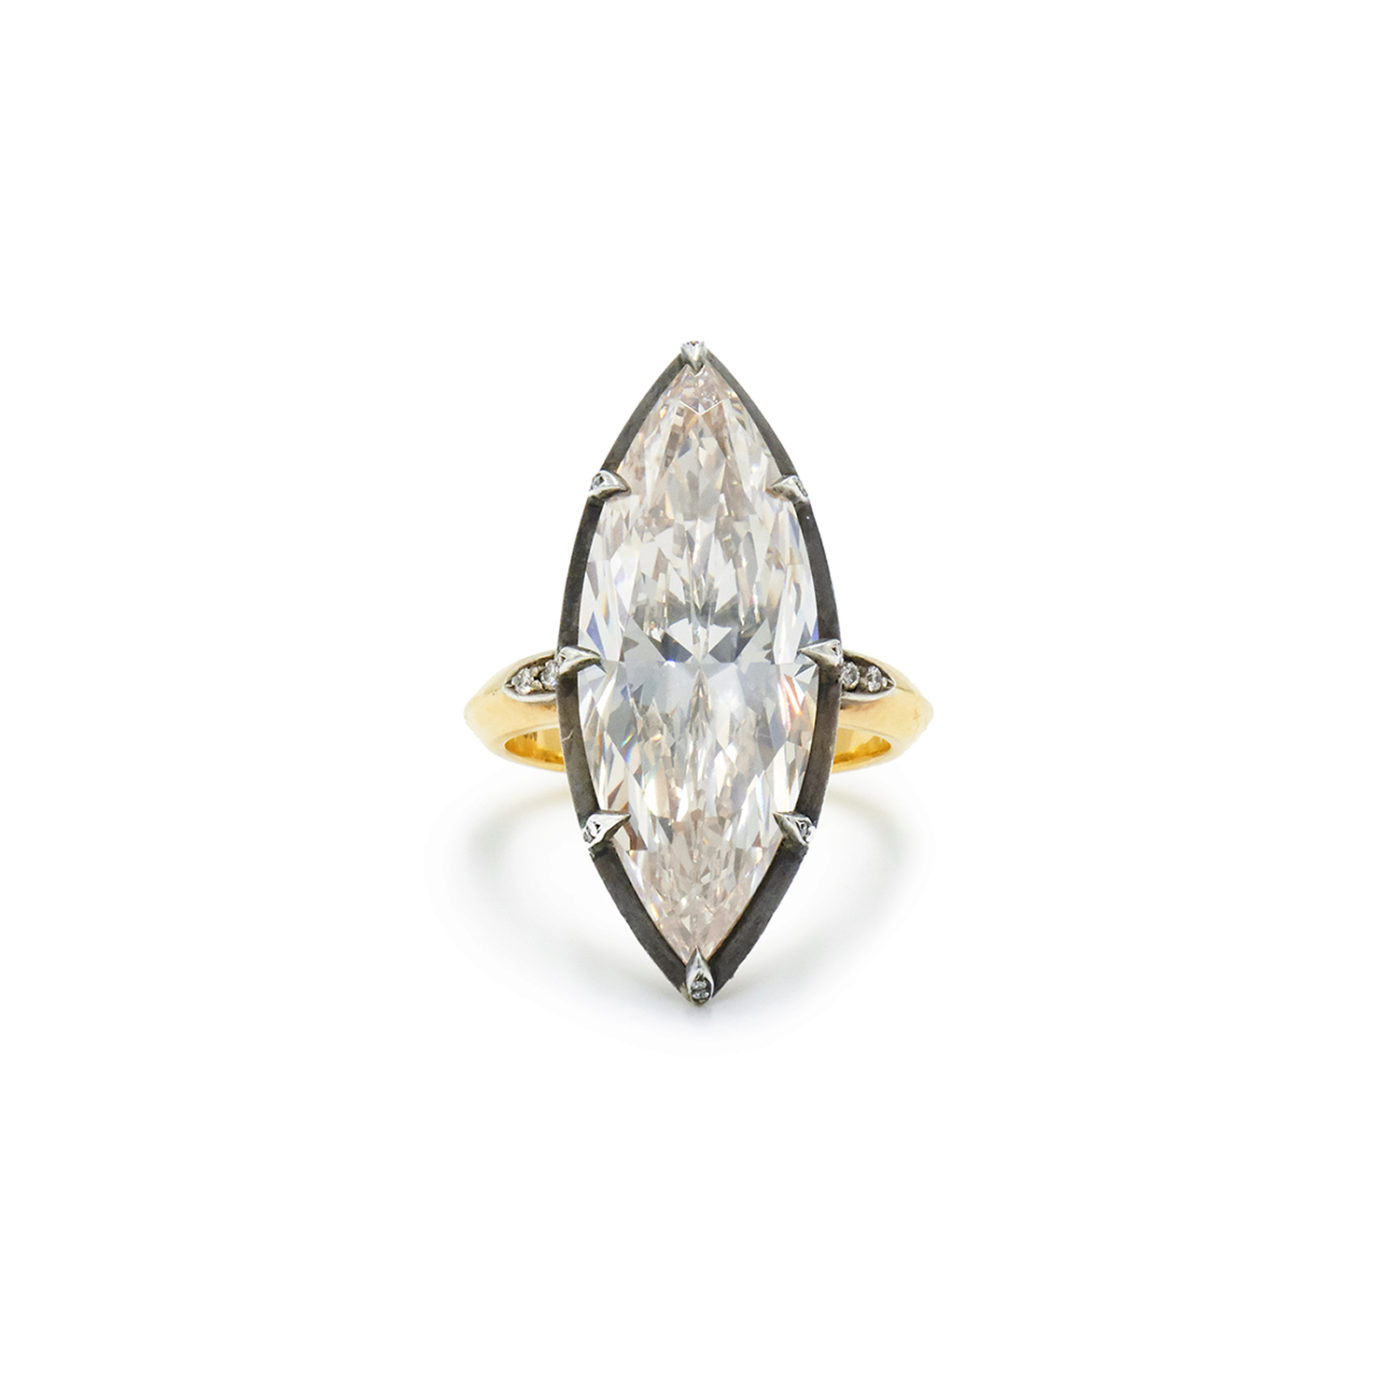 10 05ct Marquise Diamond Collet Ring Signed Fred Leighton Fred Leighton